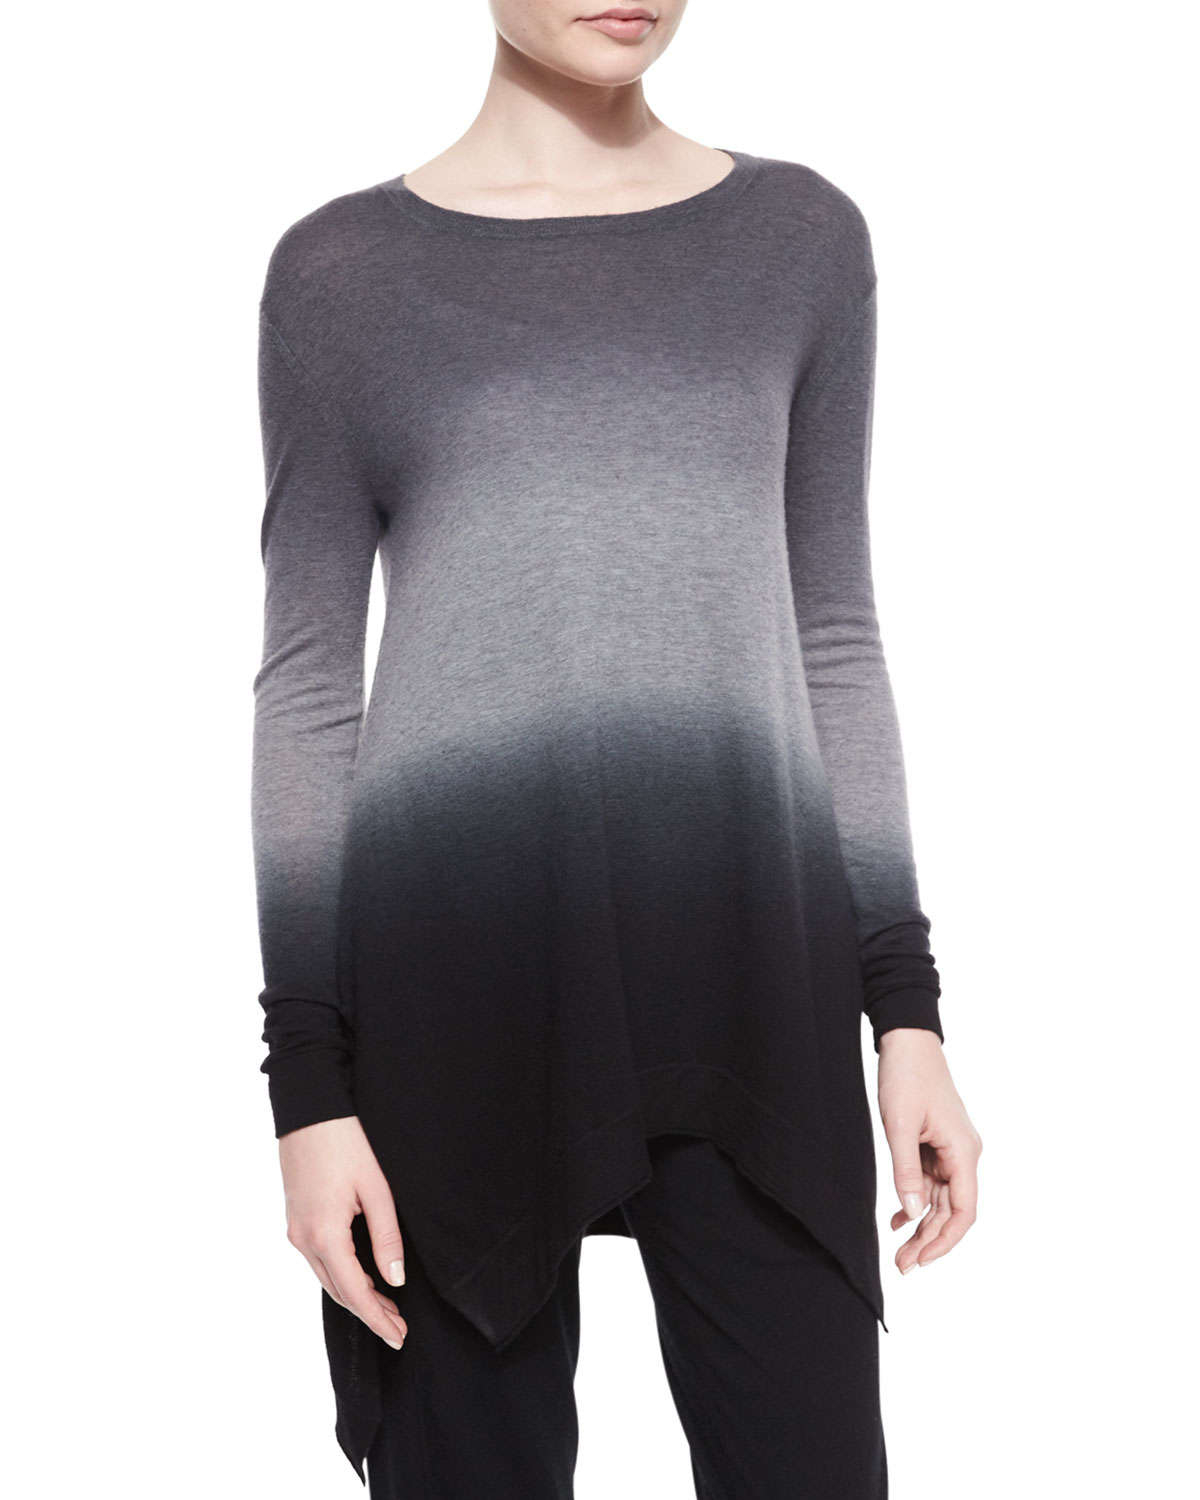 Donna karan Ombre Cashmere Tunic Sweater in Black | Lyst